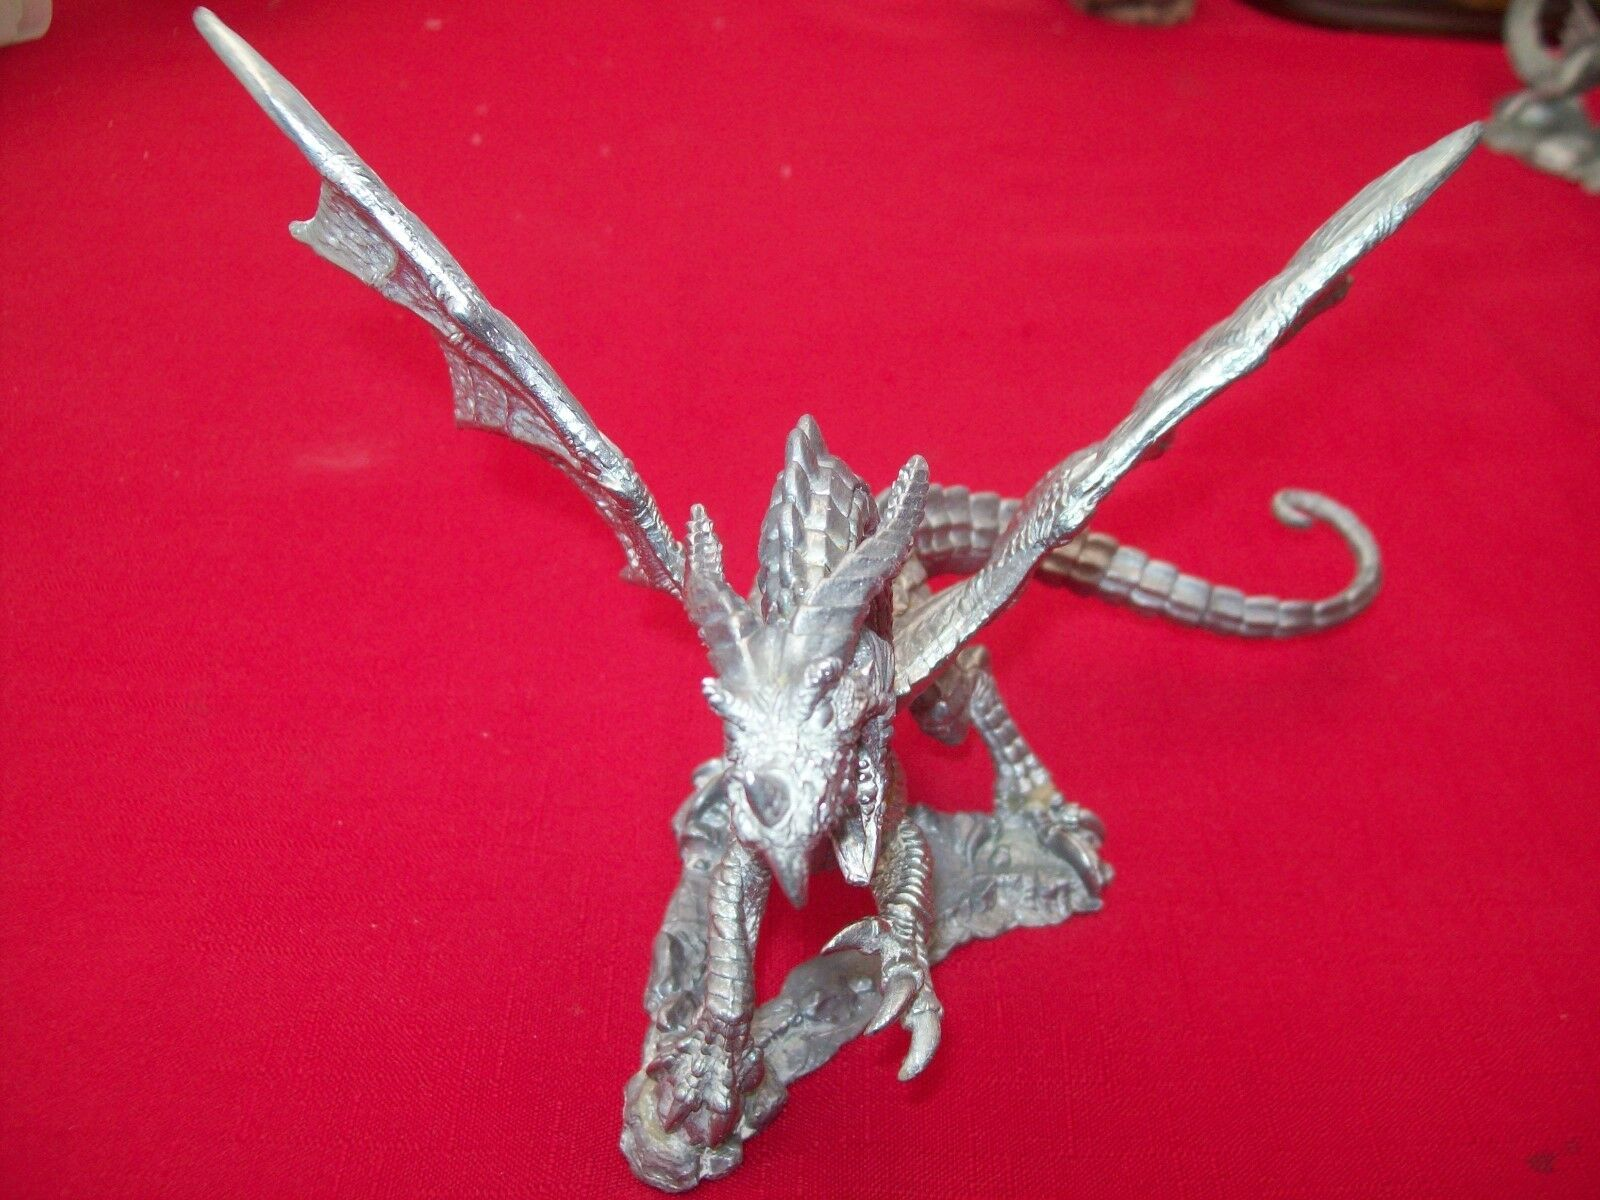 Grenadier Models-Dragon Lords-Special Editions 2525 Teronus,the Ultimate Dragon